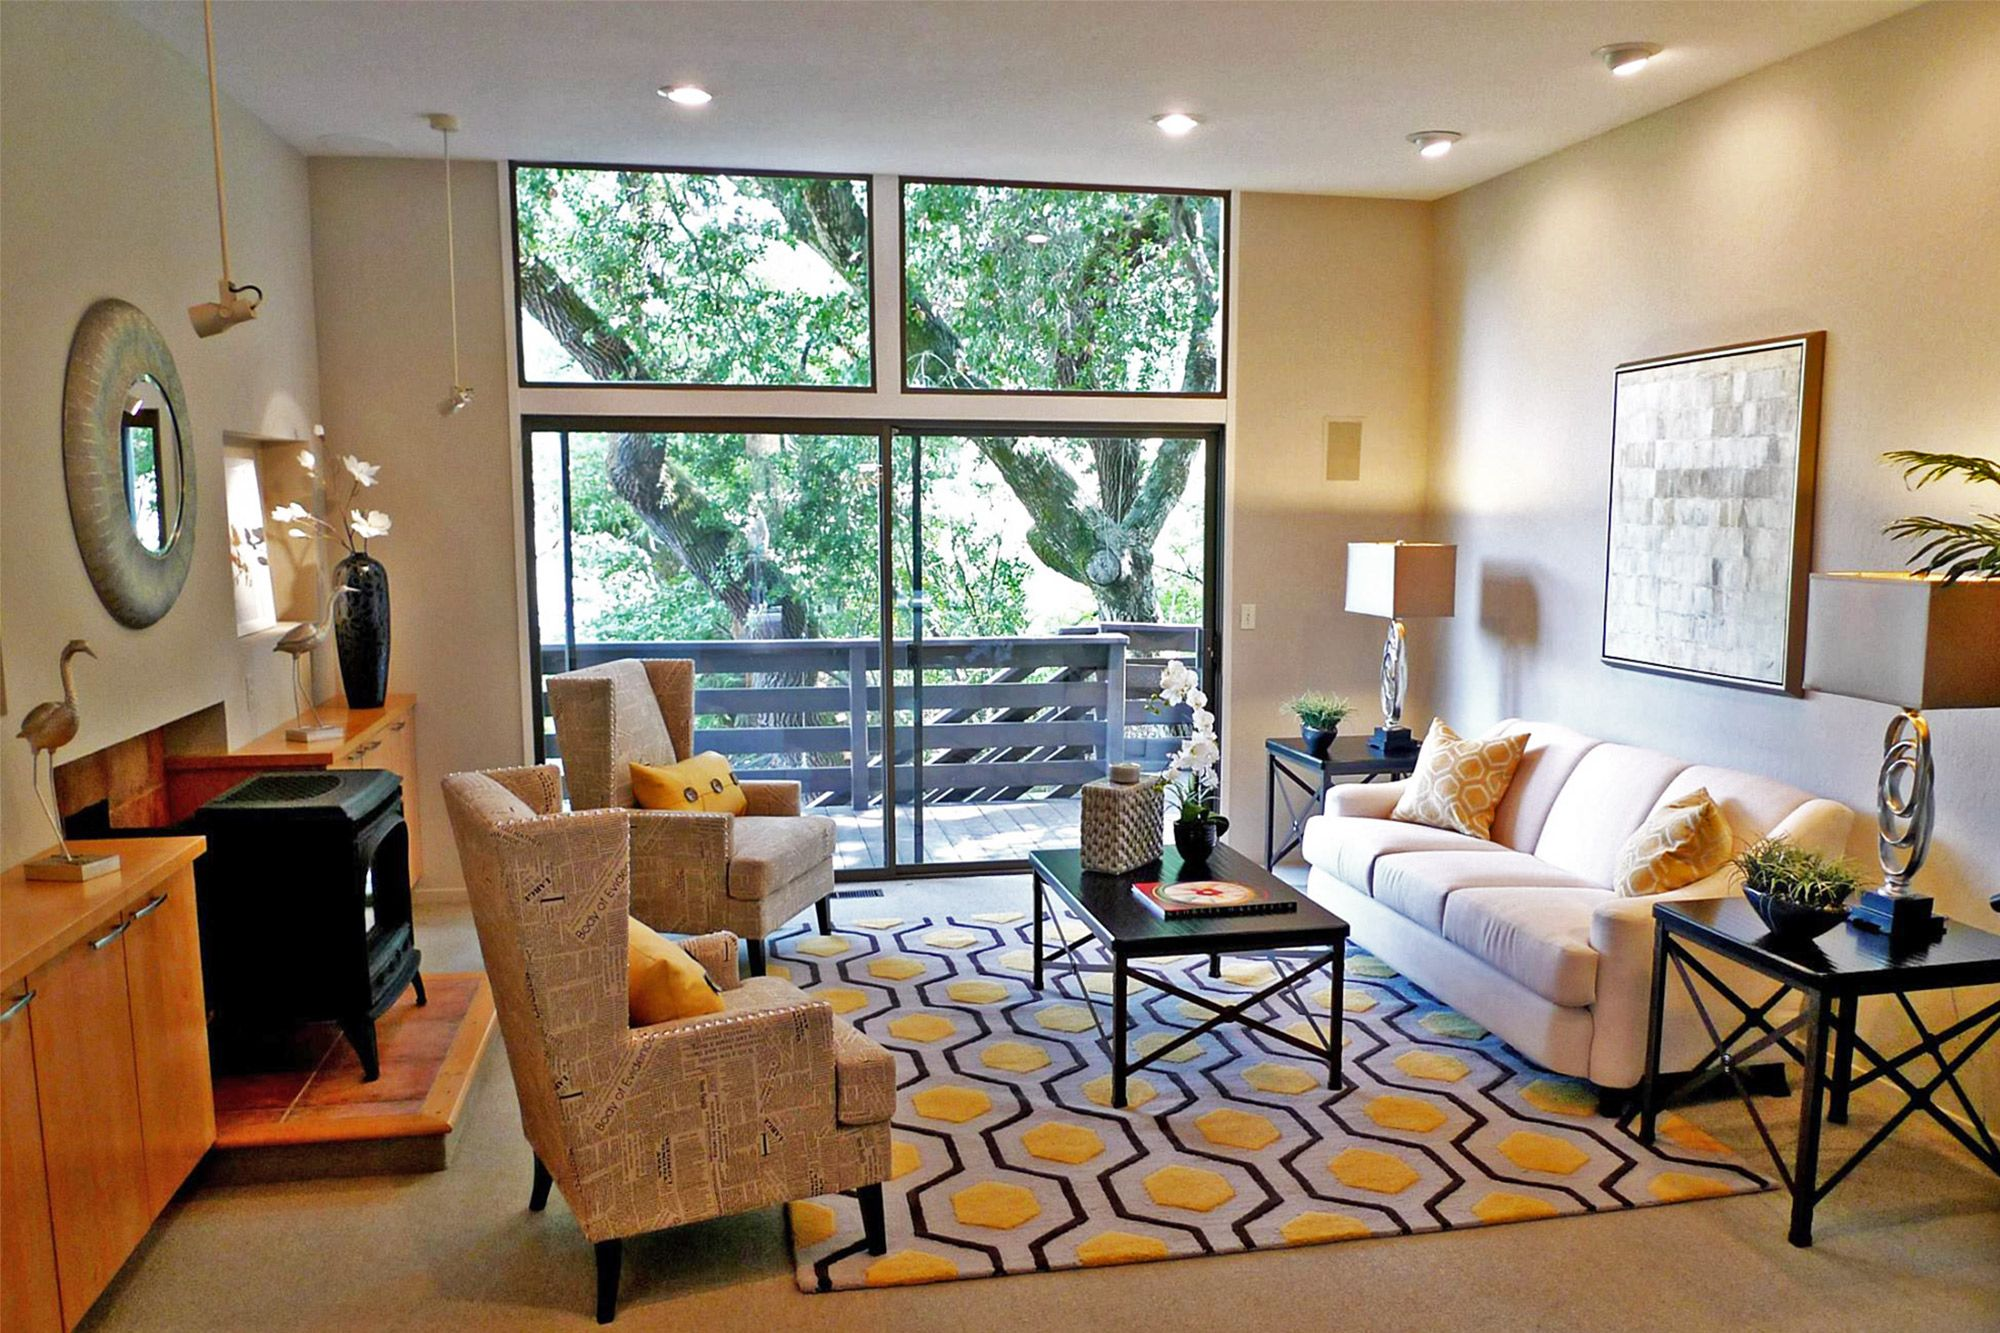 Staging Your Condo for a Quick Sale